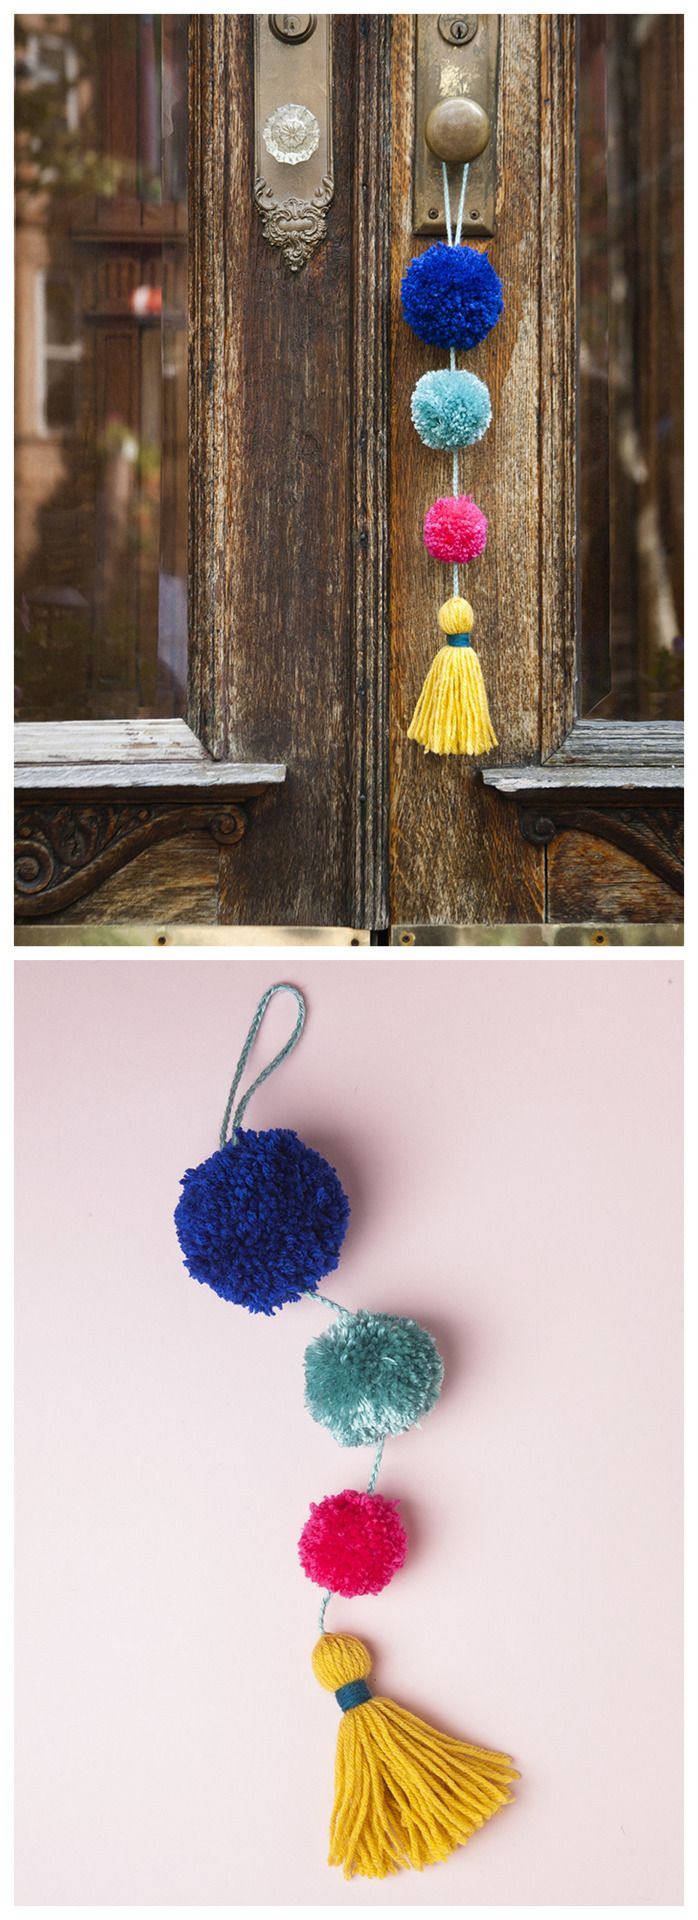 DIY Pom Pom Tassel DoorKnob DecorationI like Pom Pom DIYs because all you need is scrap yarn, cardboard or a fork, and scissors. For more Pom Pom DIYs - from flowers to garlands - go here. Find this quick and easy DIY Pom Pom Tassel Doorknob...